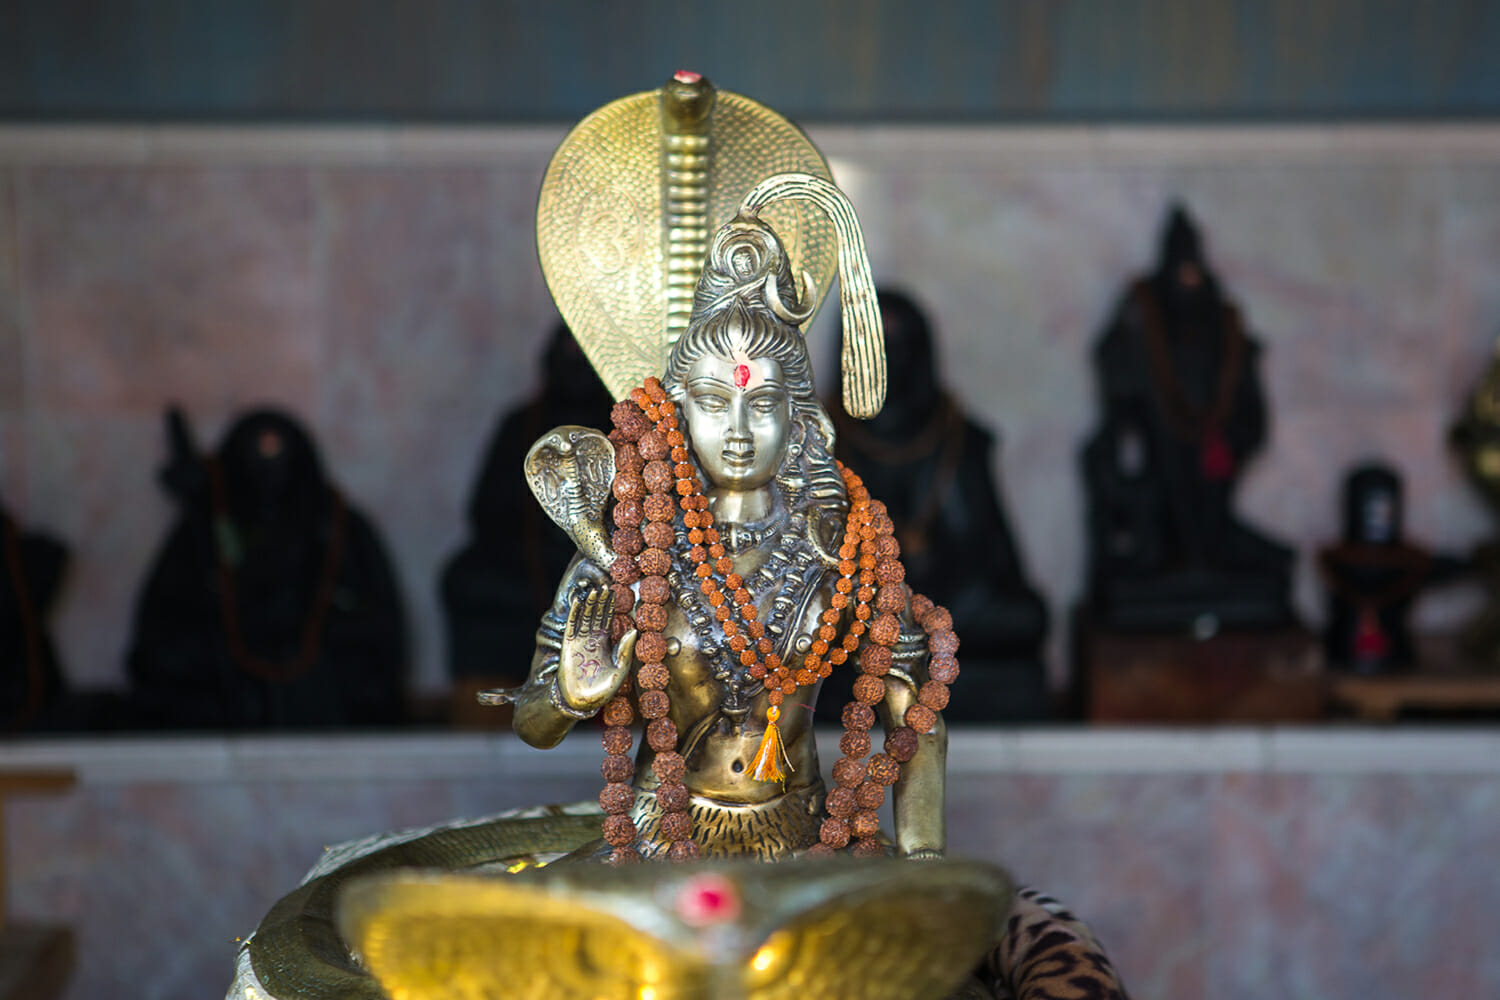 Paths to Peace: Lord Siva & Pure Consciousness at the Sivananda Yoga Ranch